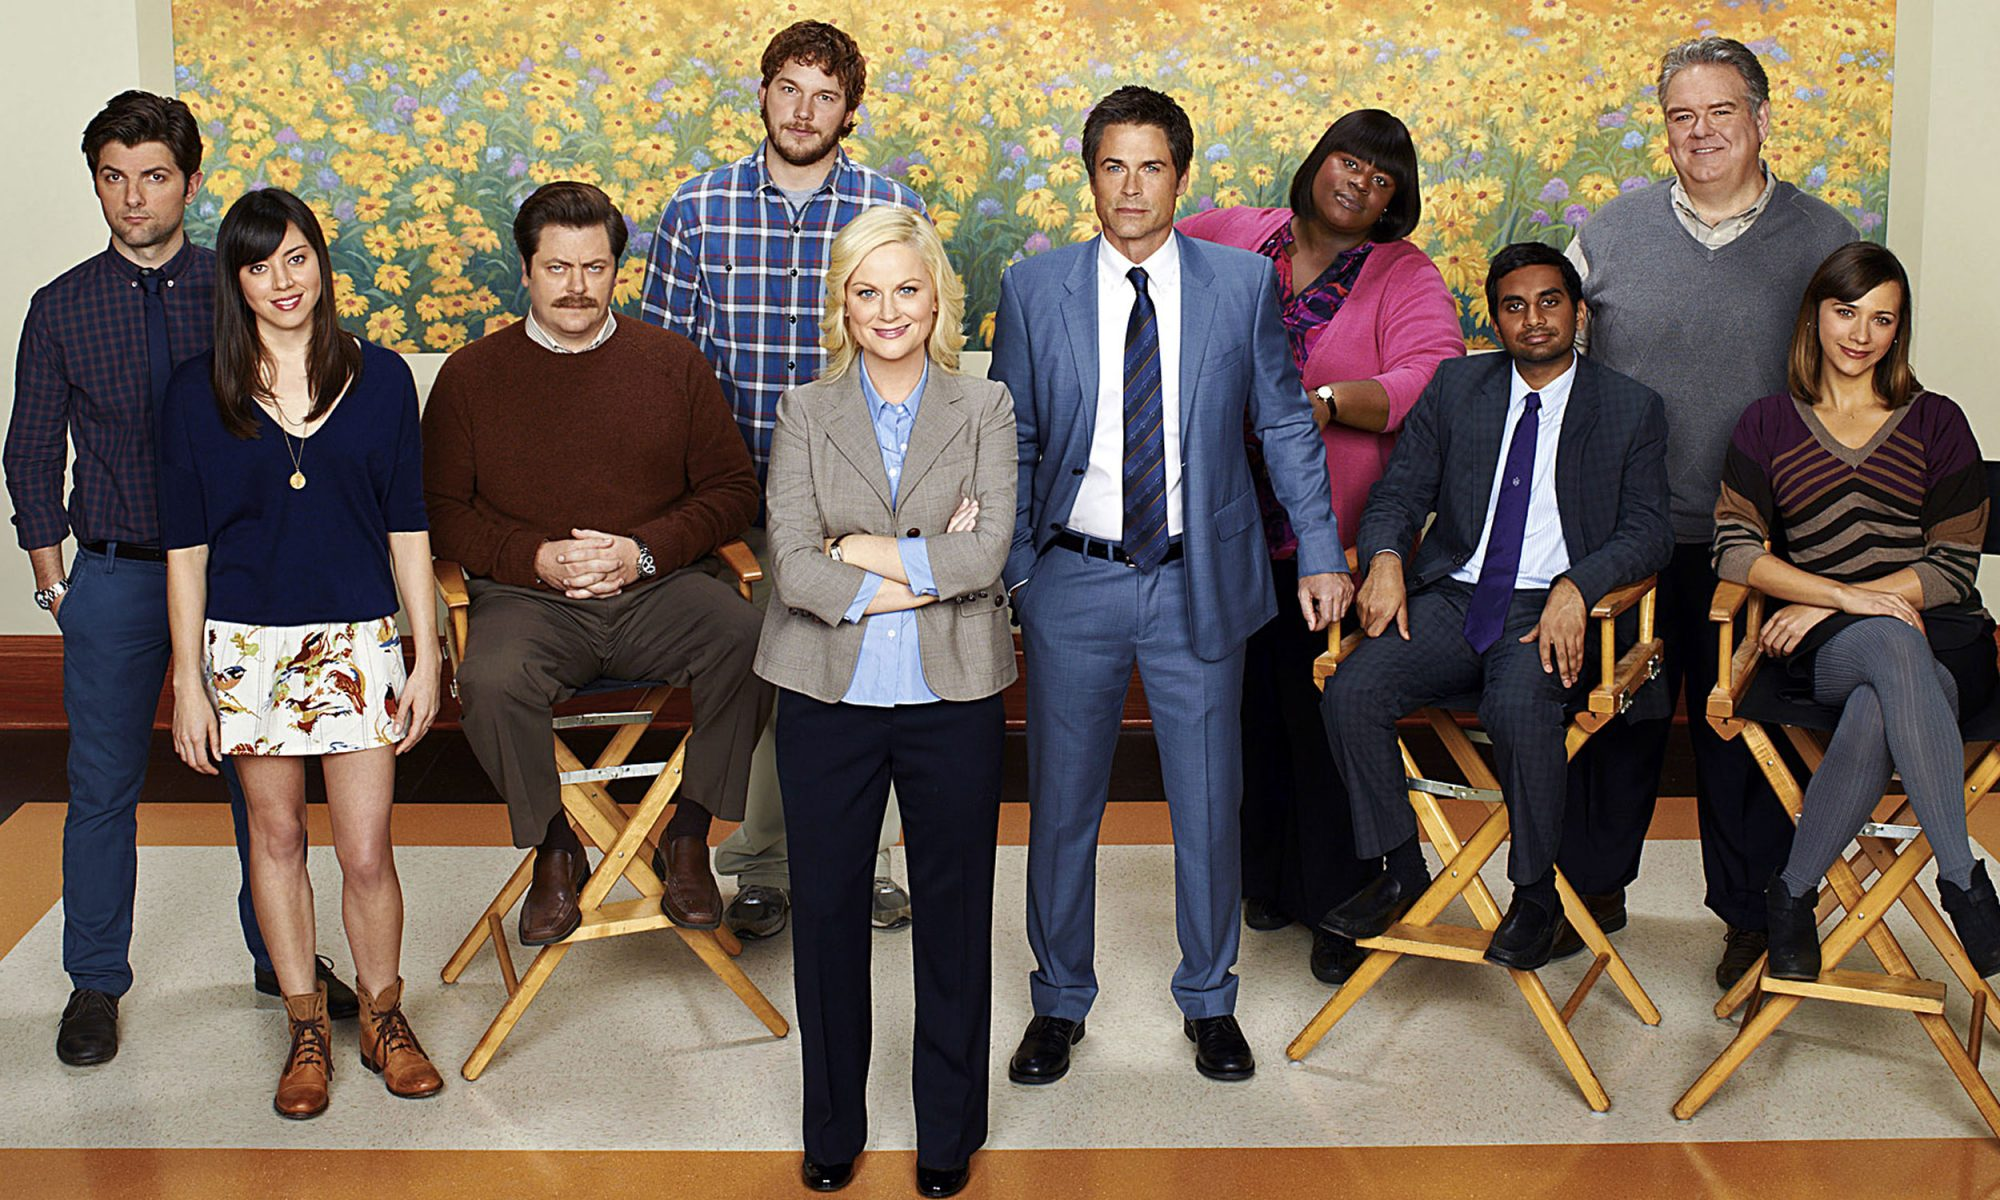 EC: Every Single Breakfast Item Consumed on 'Parks and Recreation'